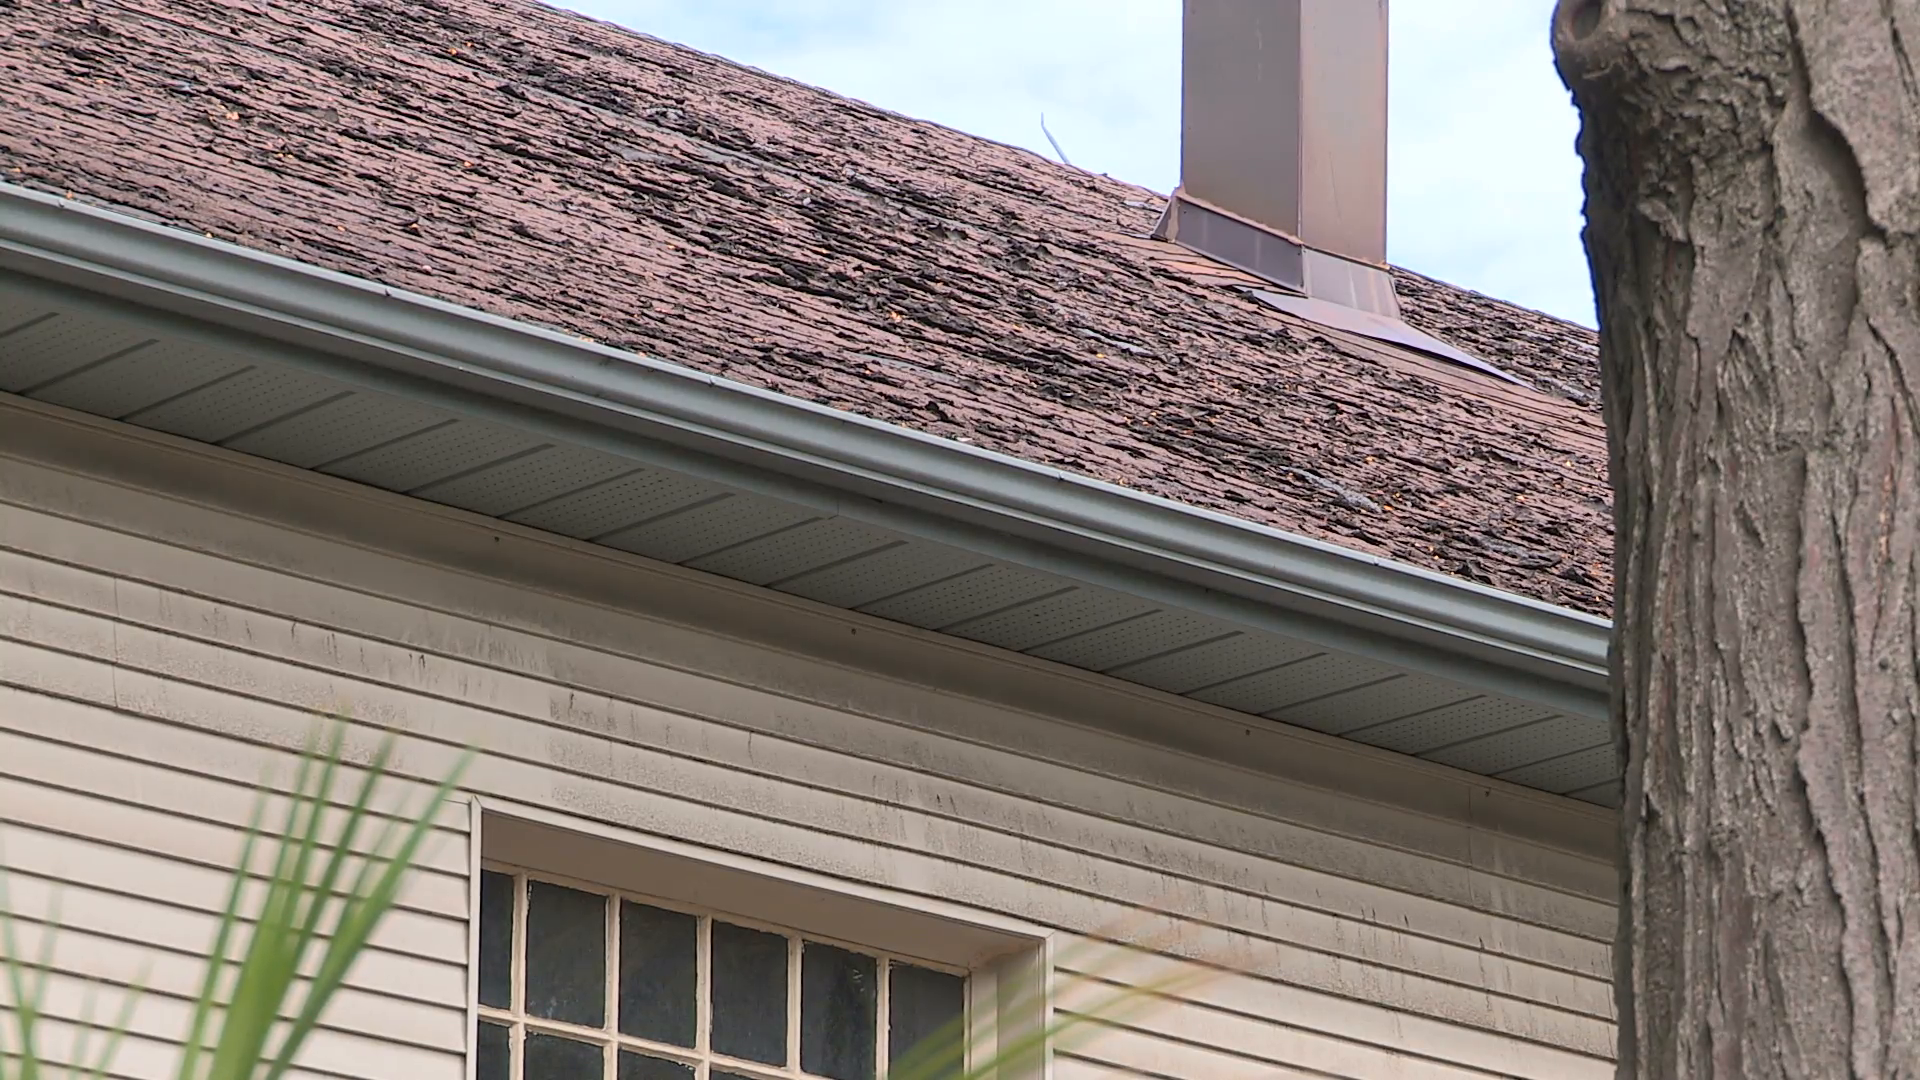 roof-with-worn-and-damaged-shingles_nkwgeyqye__F0000